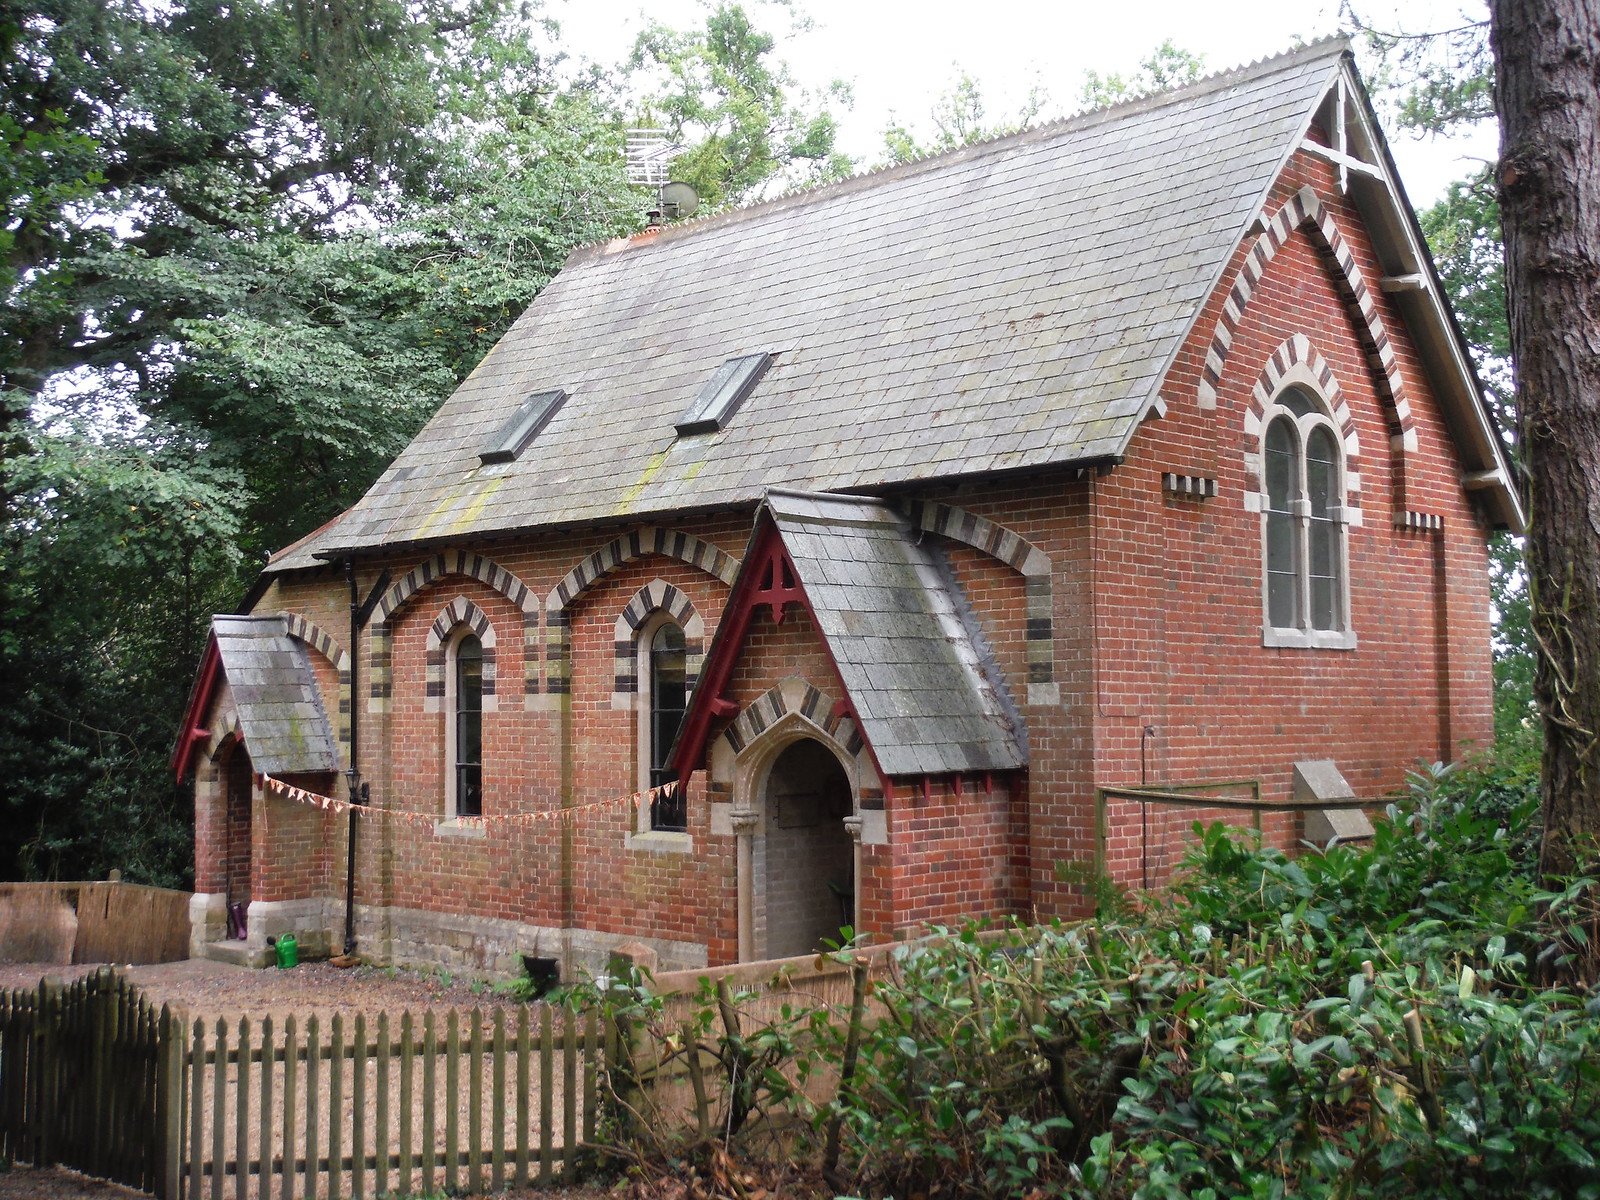 Converted Chapel, Ridge hamlet SWC Walk 248 Tisbury Circular via Hindon